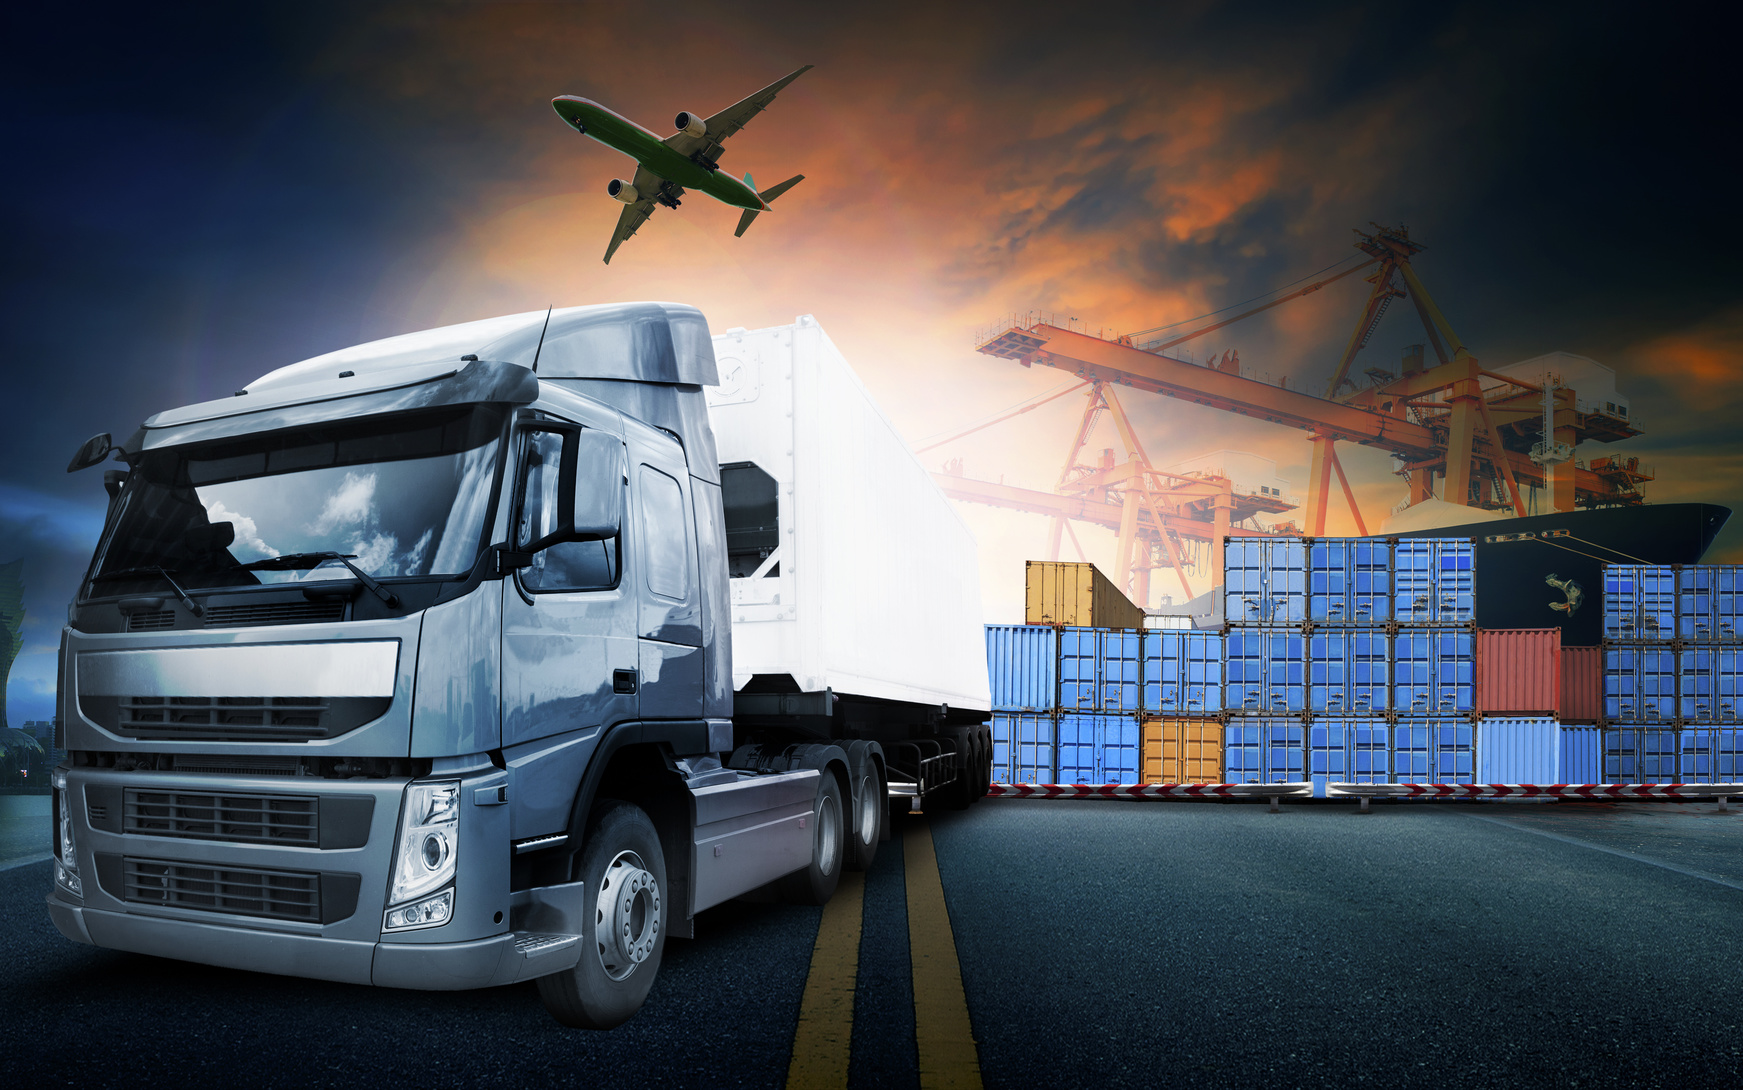 Whether it's trade show shipping, determining freight class, or understanding freight insurance, Diamond Global Logistics provides unbeatable freight logistics services.